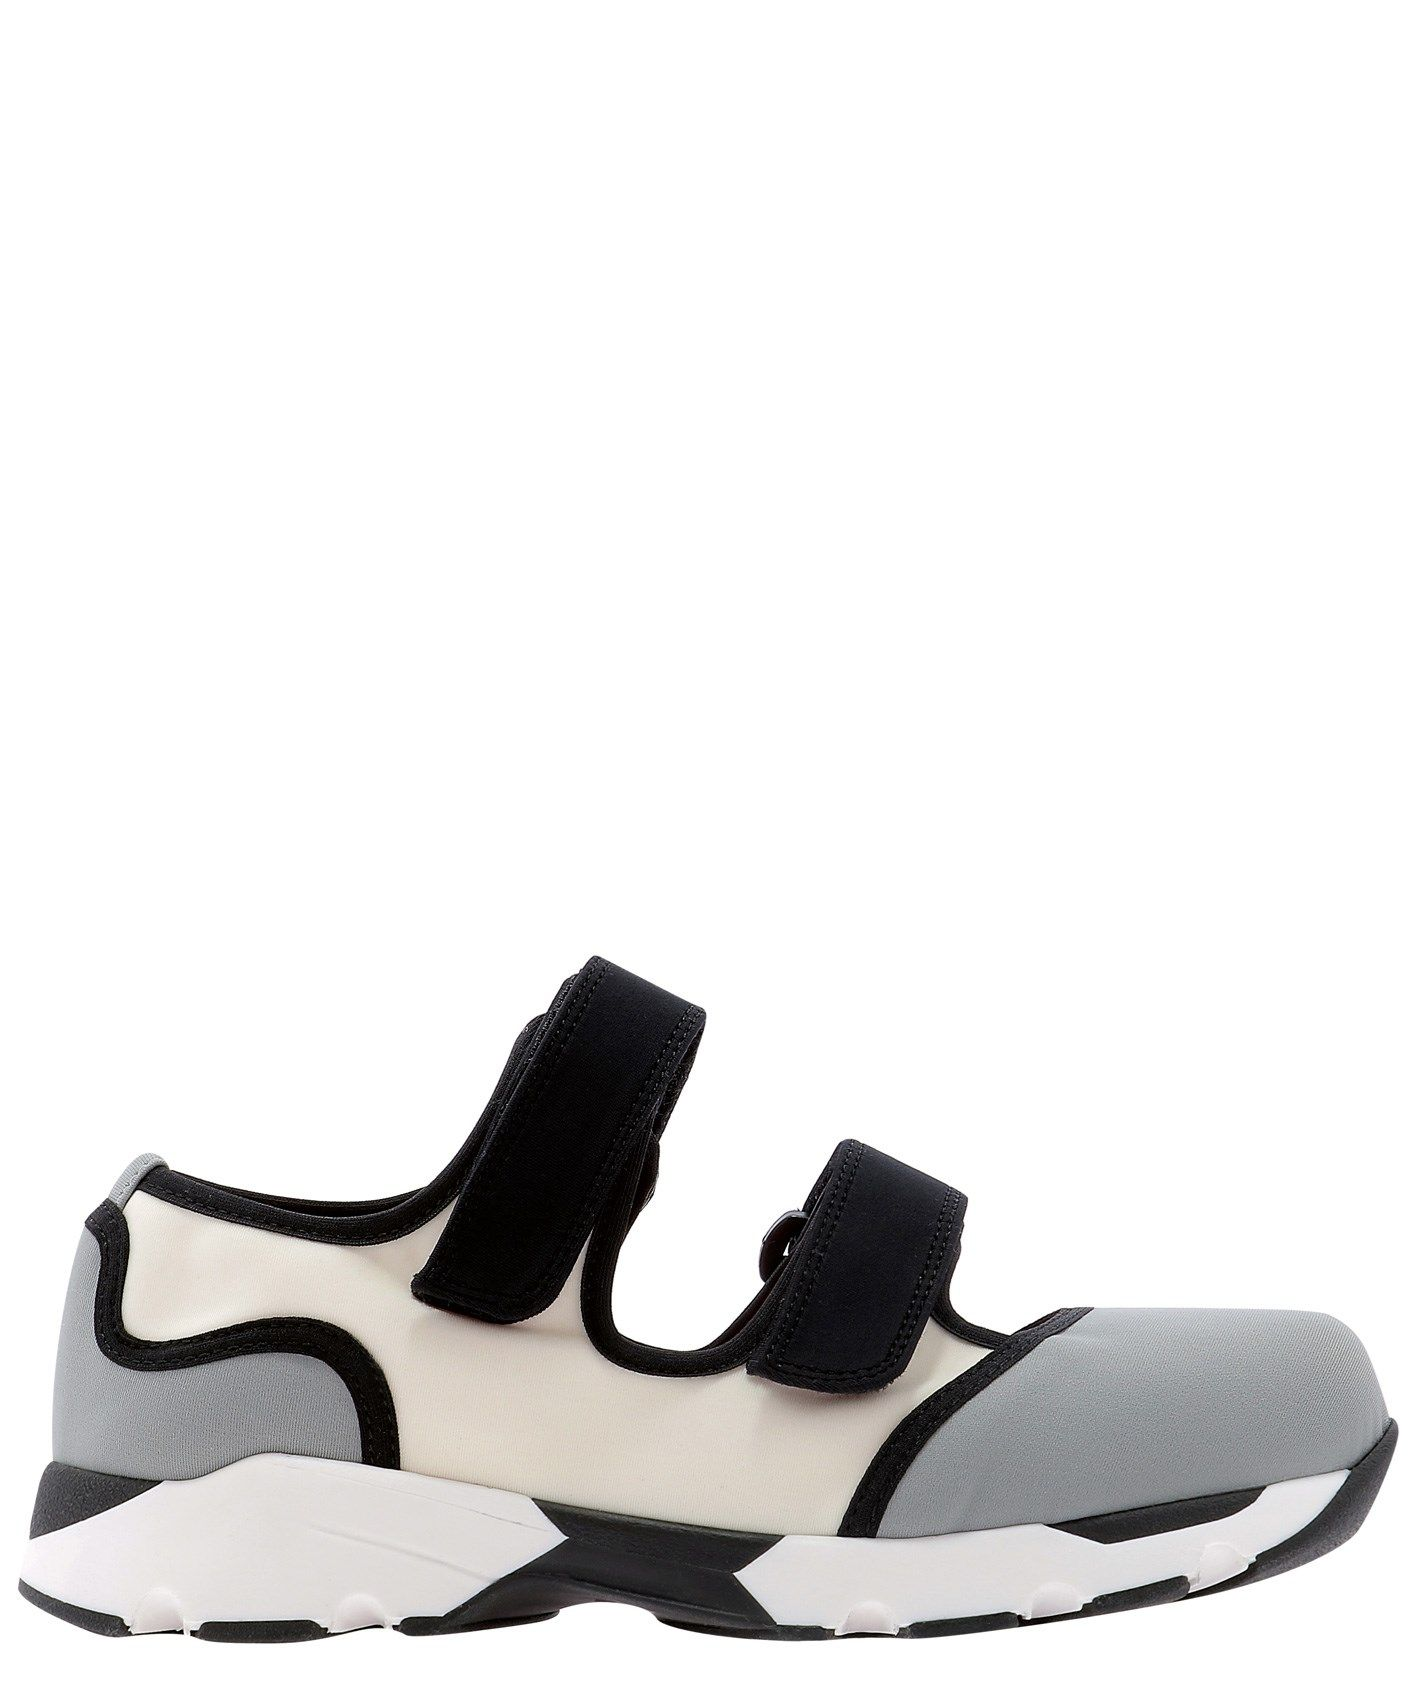 Marni MARNI WOMEN'S GREY OTHER MATERIALS SNEAKERS